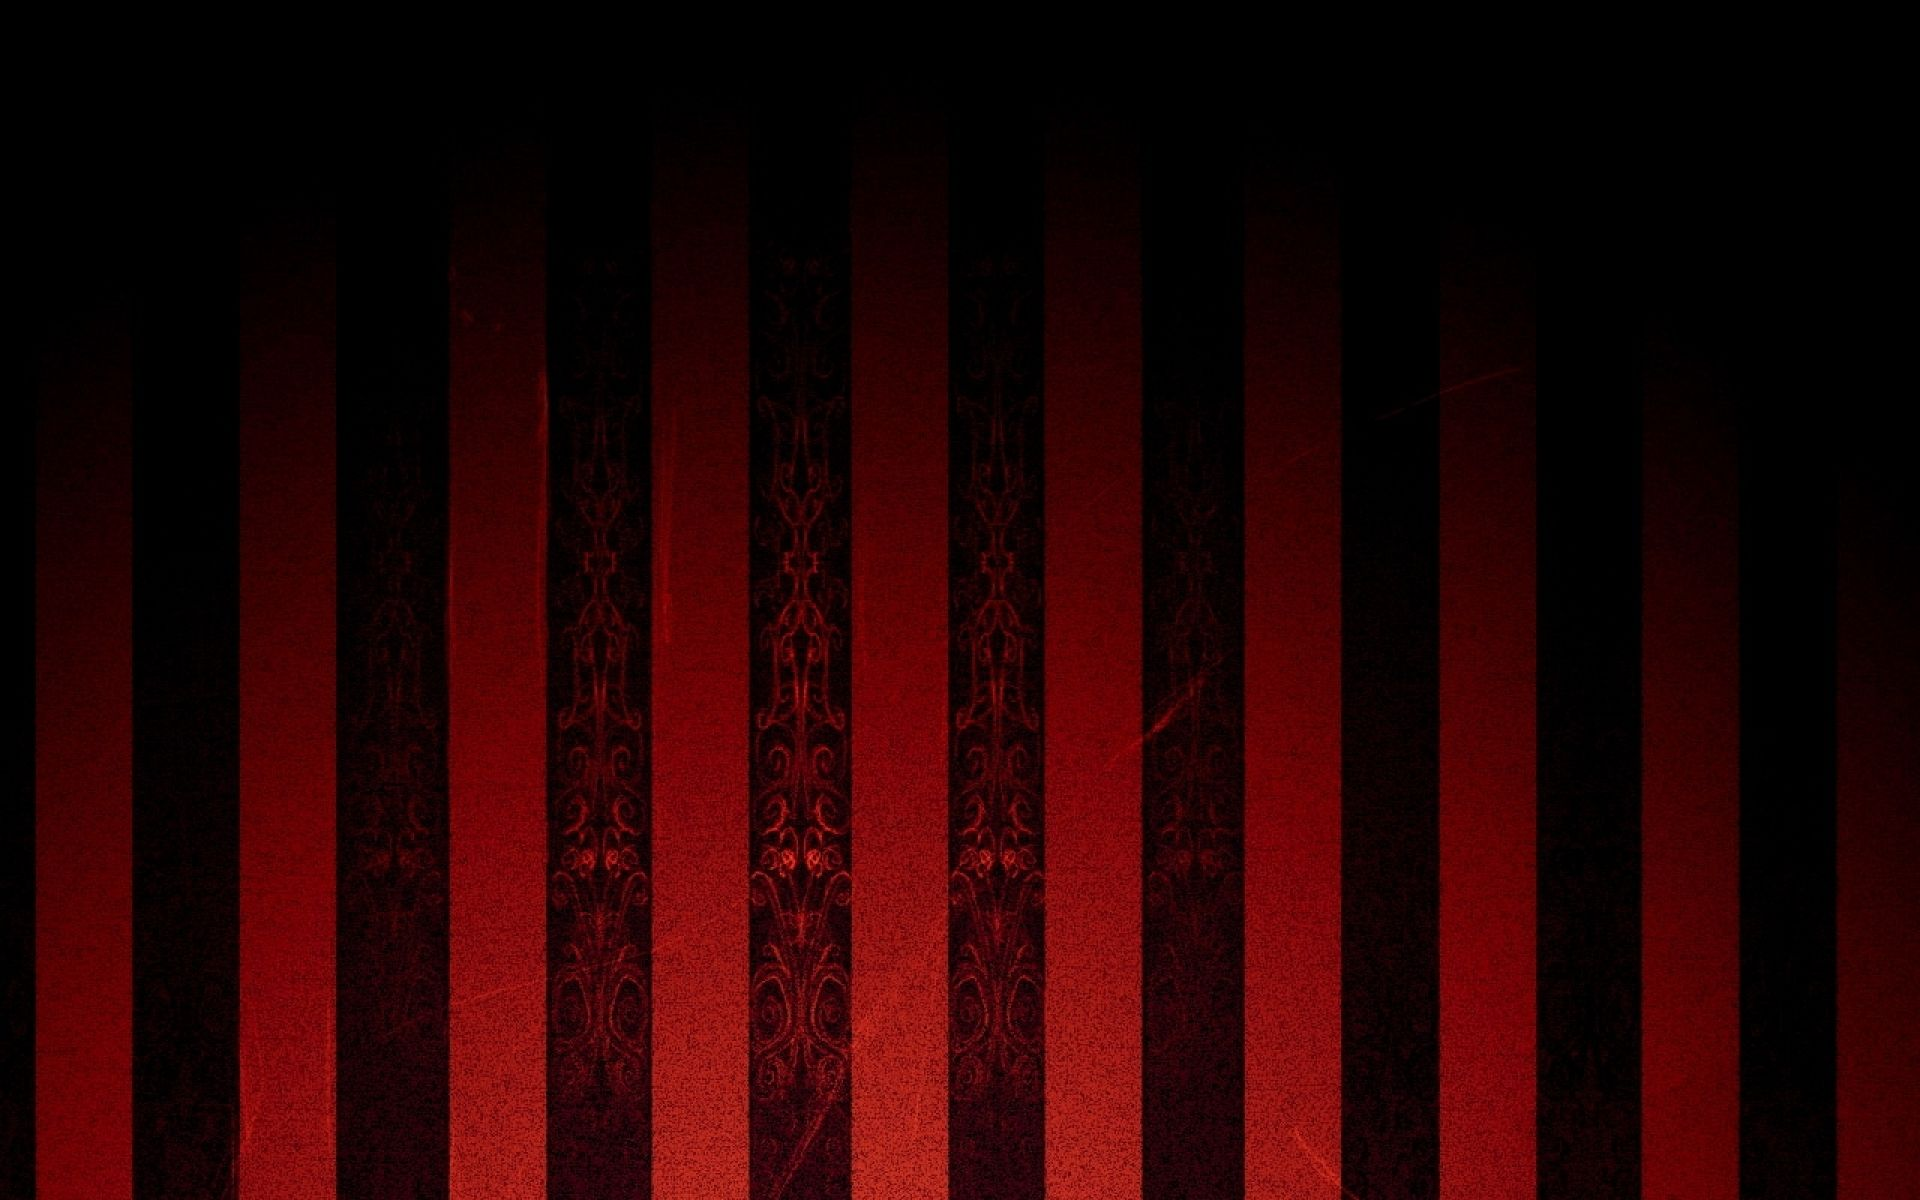 Hd wallpaper red and black - Stripes Wallpaper Hd Wallpapers Pinterest Striped Wallpaper And Wallpaper